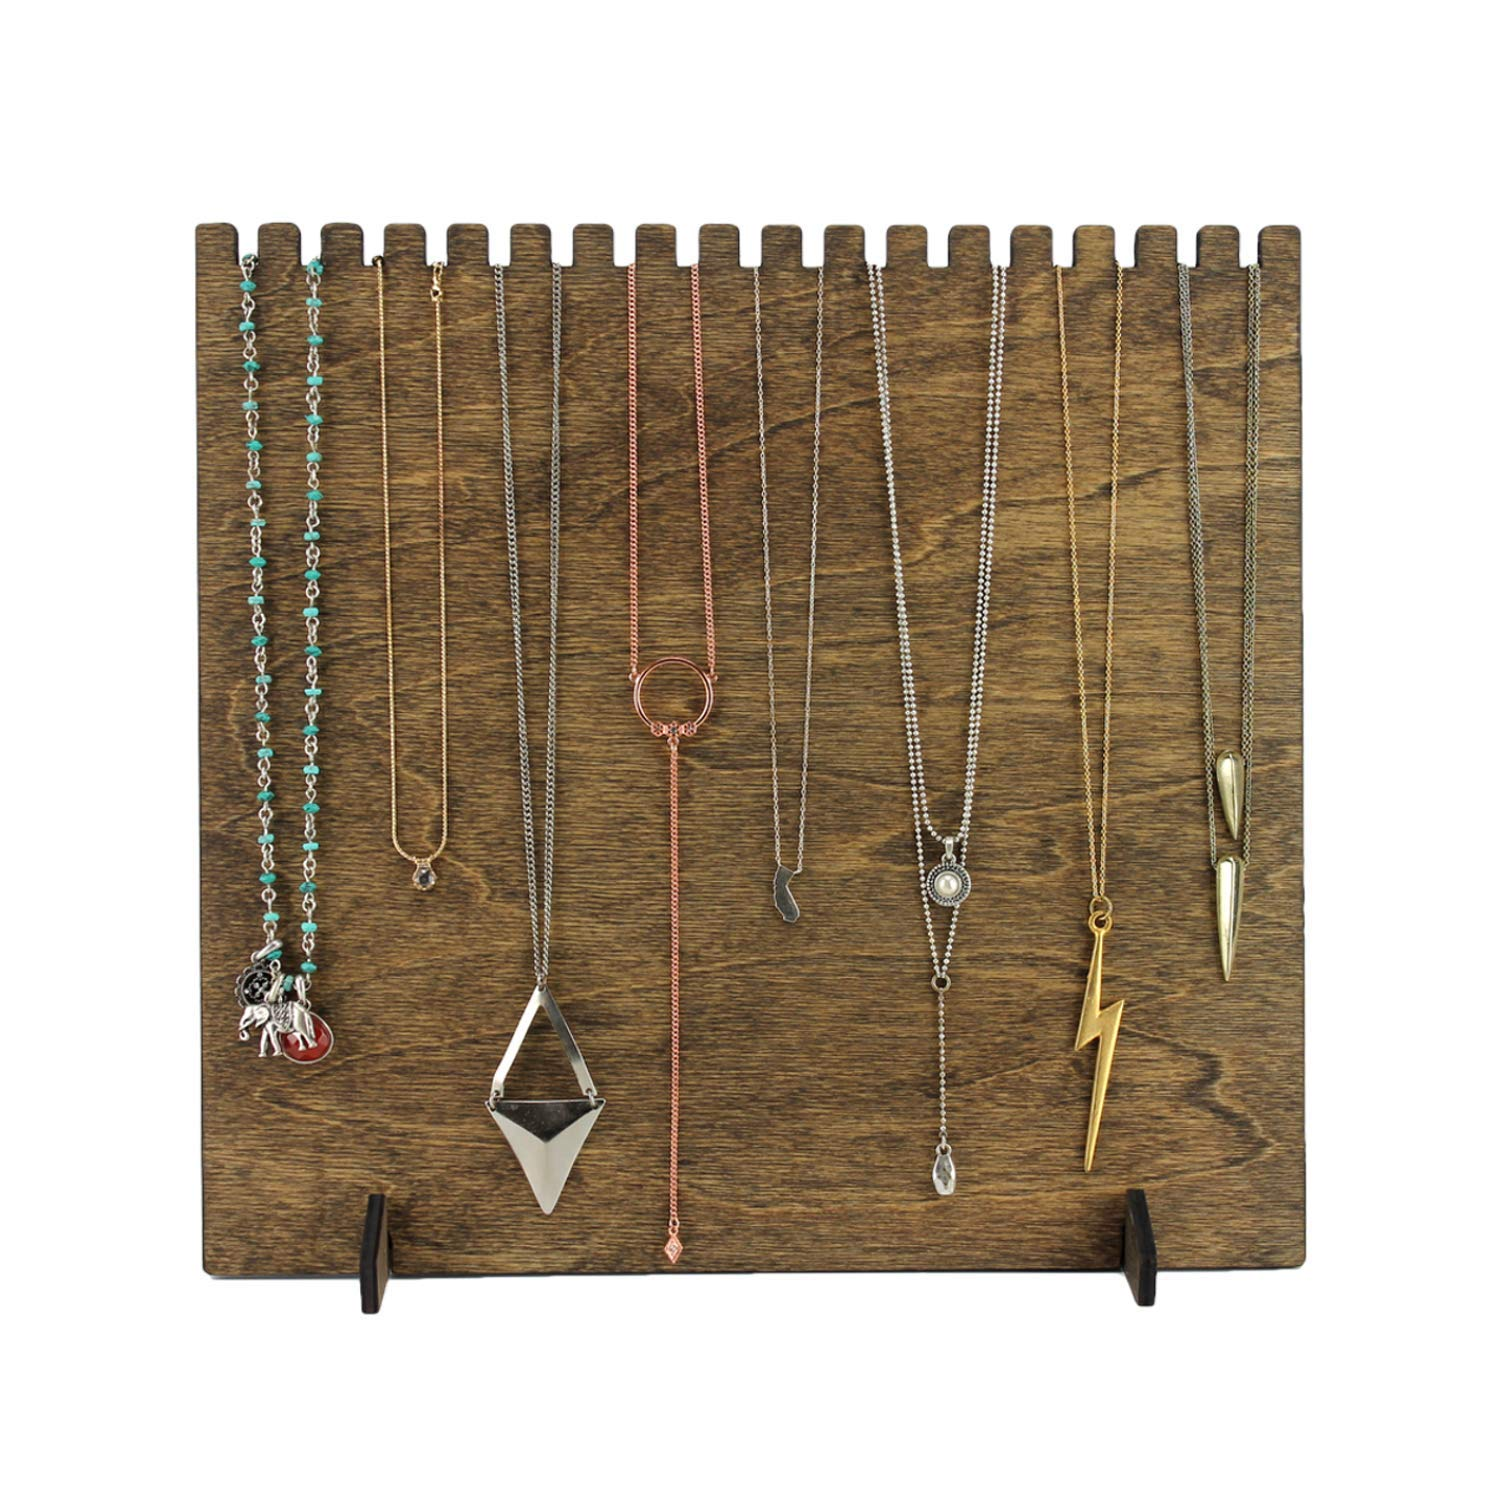 Wide Necklace Display High Capacity Birch Wood Jewelry Display 10.5 x 11 Wide Retail Display, Boutique, High Capacity, Fully Collapsible